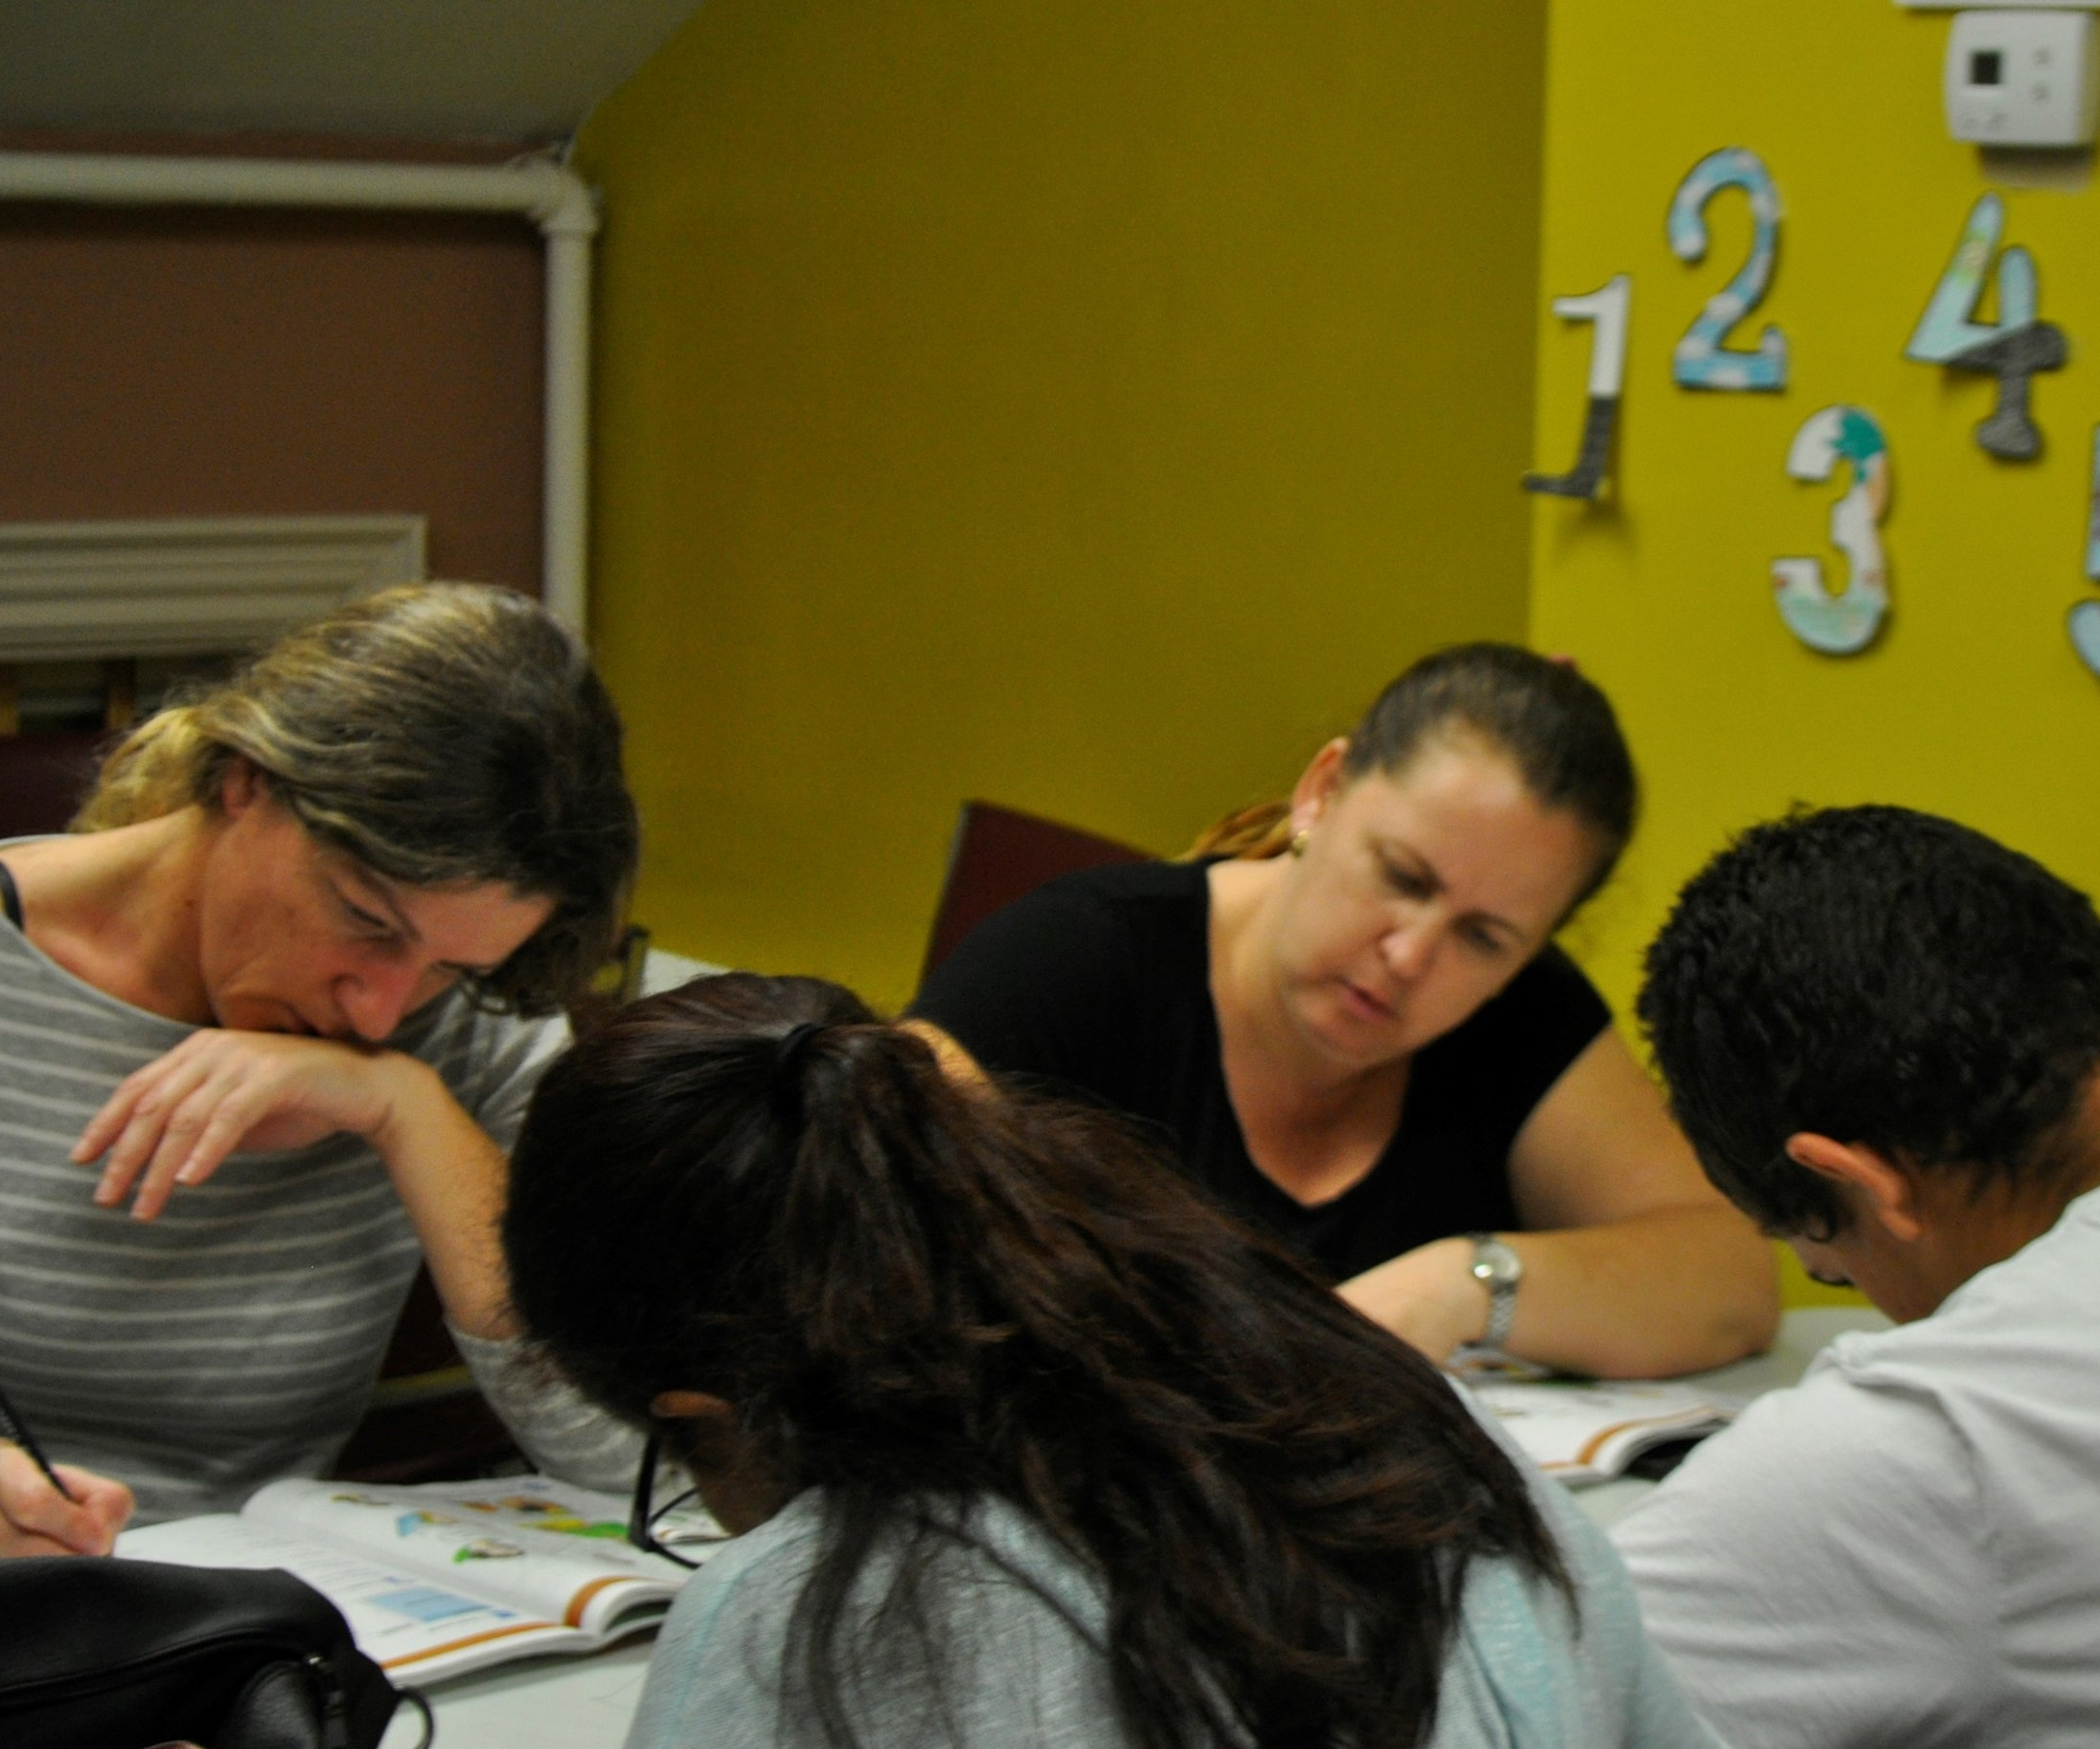 English Plus students at our Marlborough location work on activities about wellness and anatomy during class. Photo by Elizabeth Kholer.